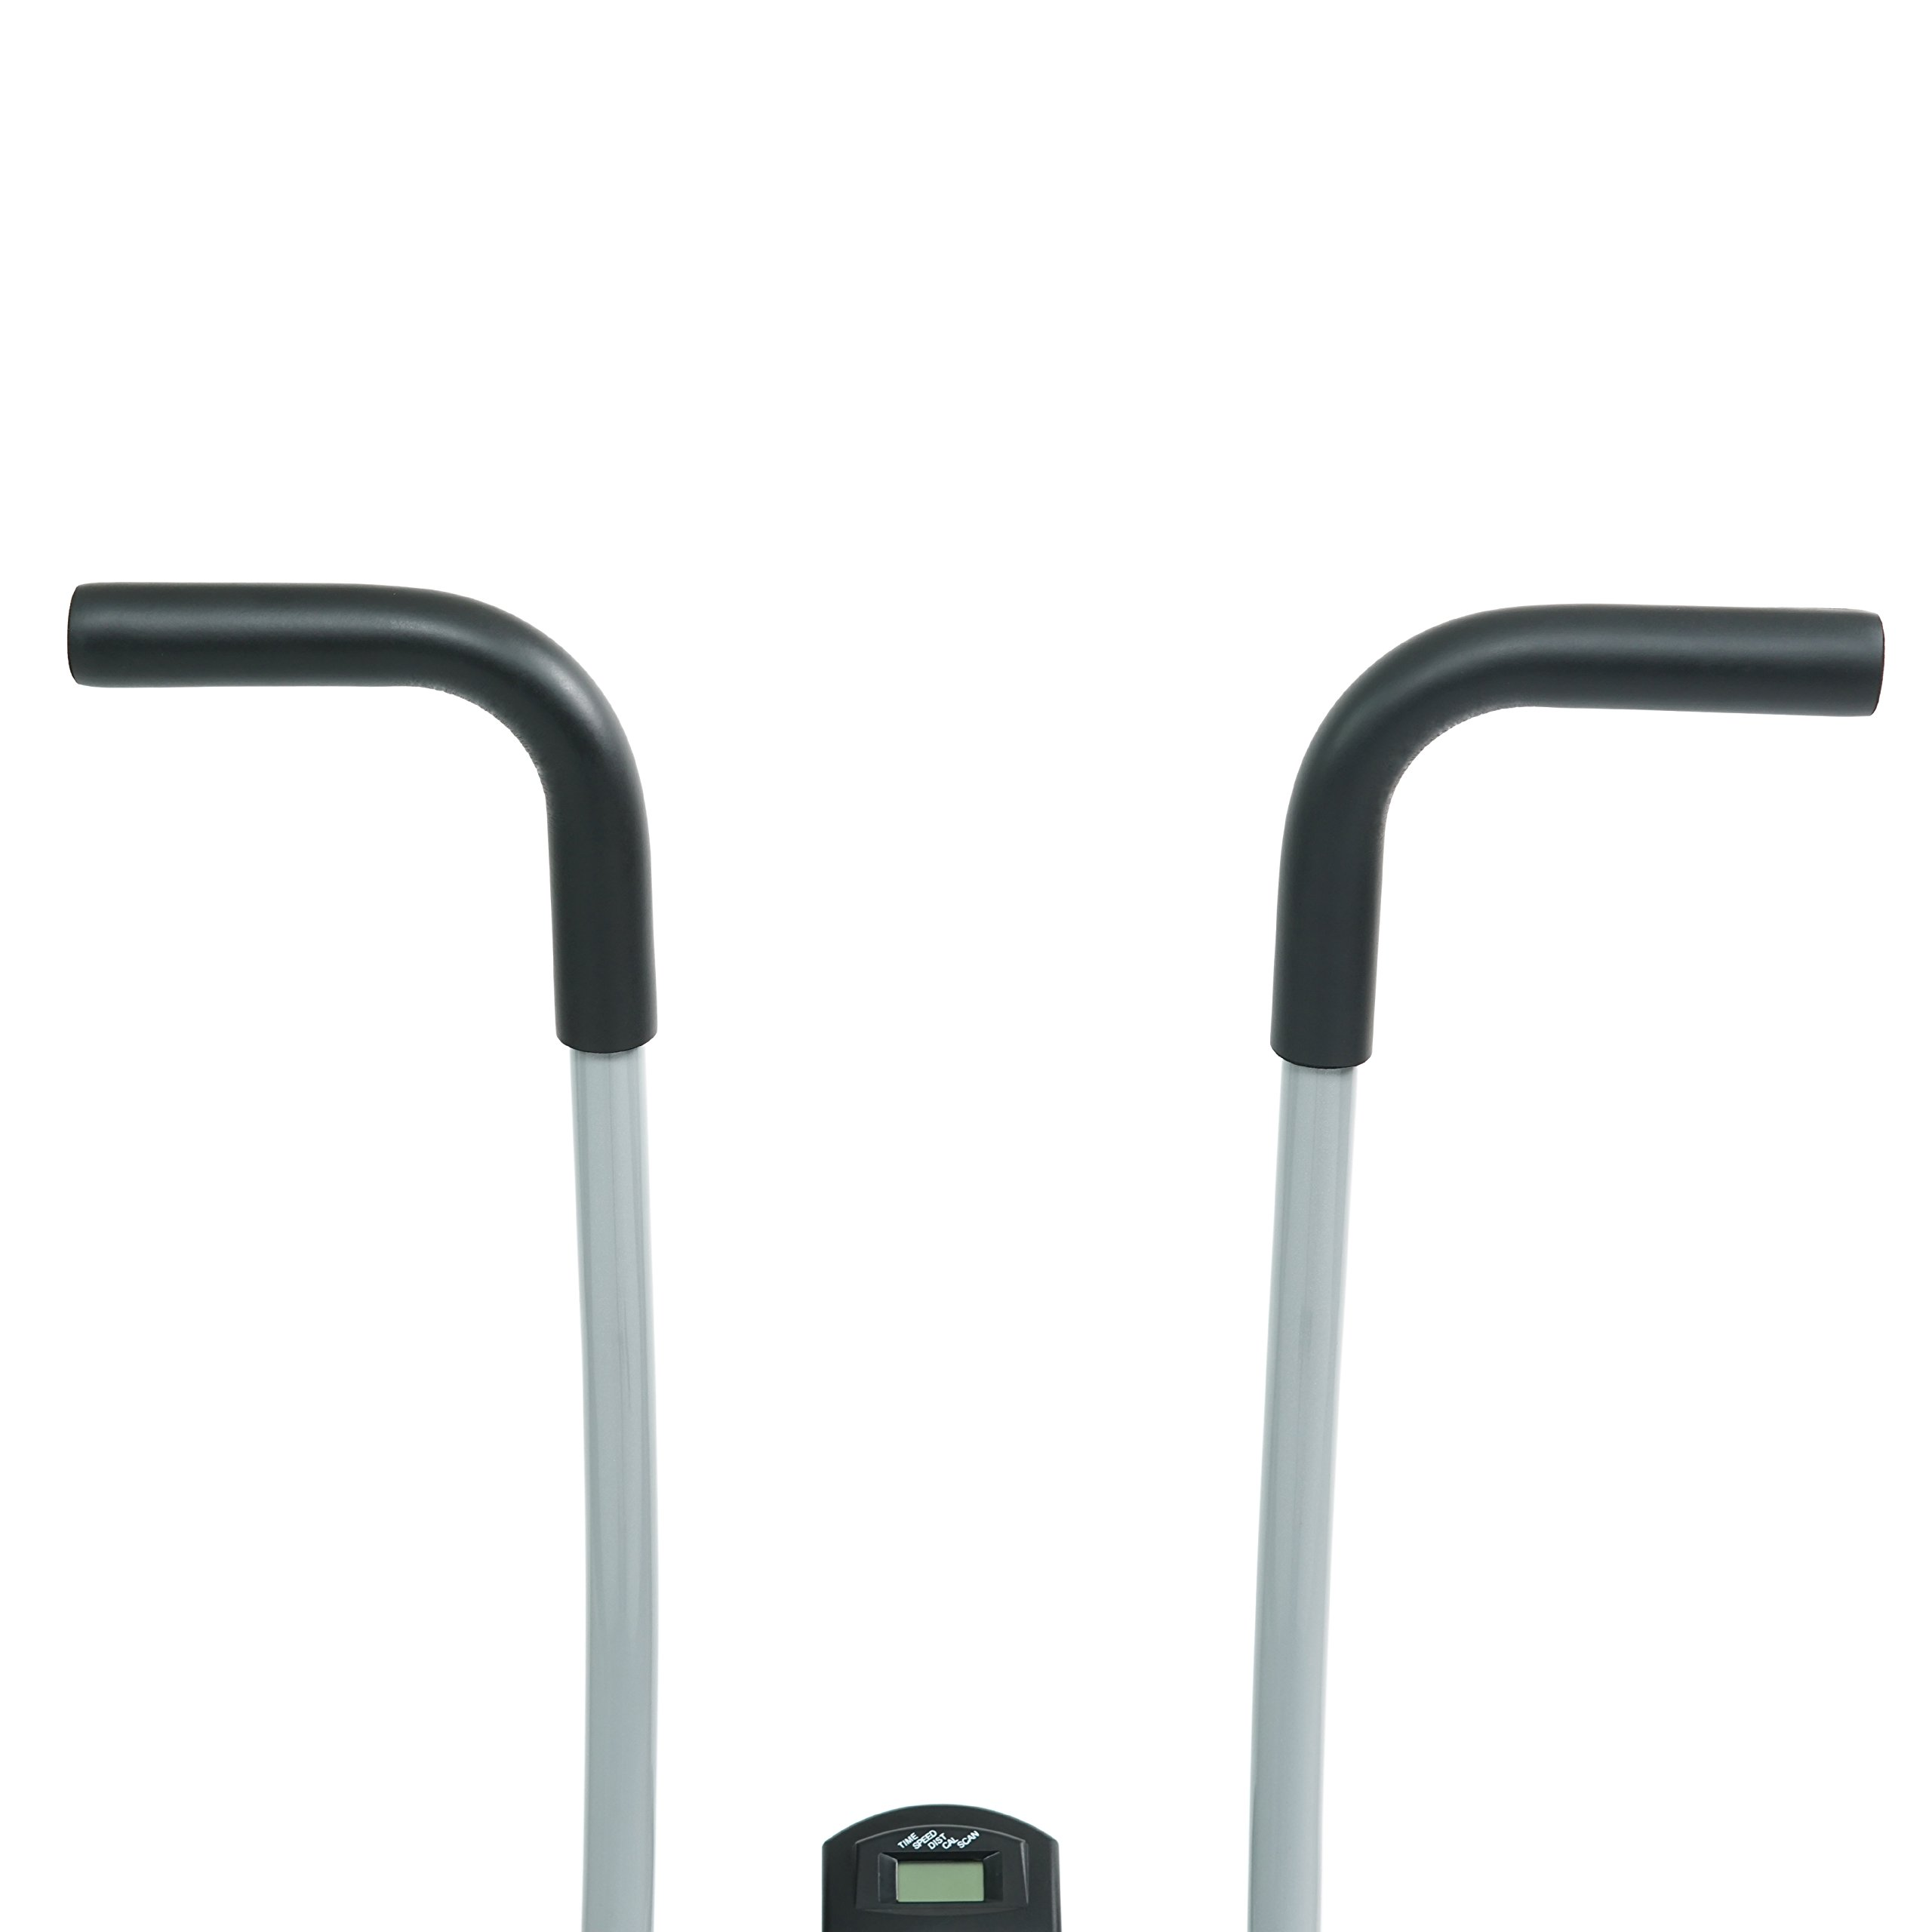 Sunny Health & Fitness SF-B2621 Cross Training Fan Upright Exercise Bike w/ Arm Exercisers by Sunny Health & Fitness (Image #10)